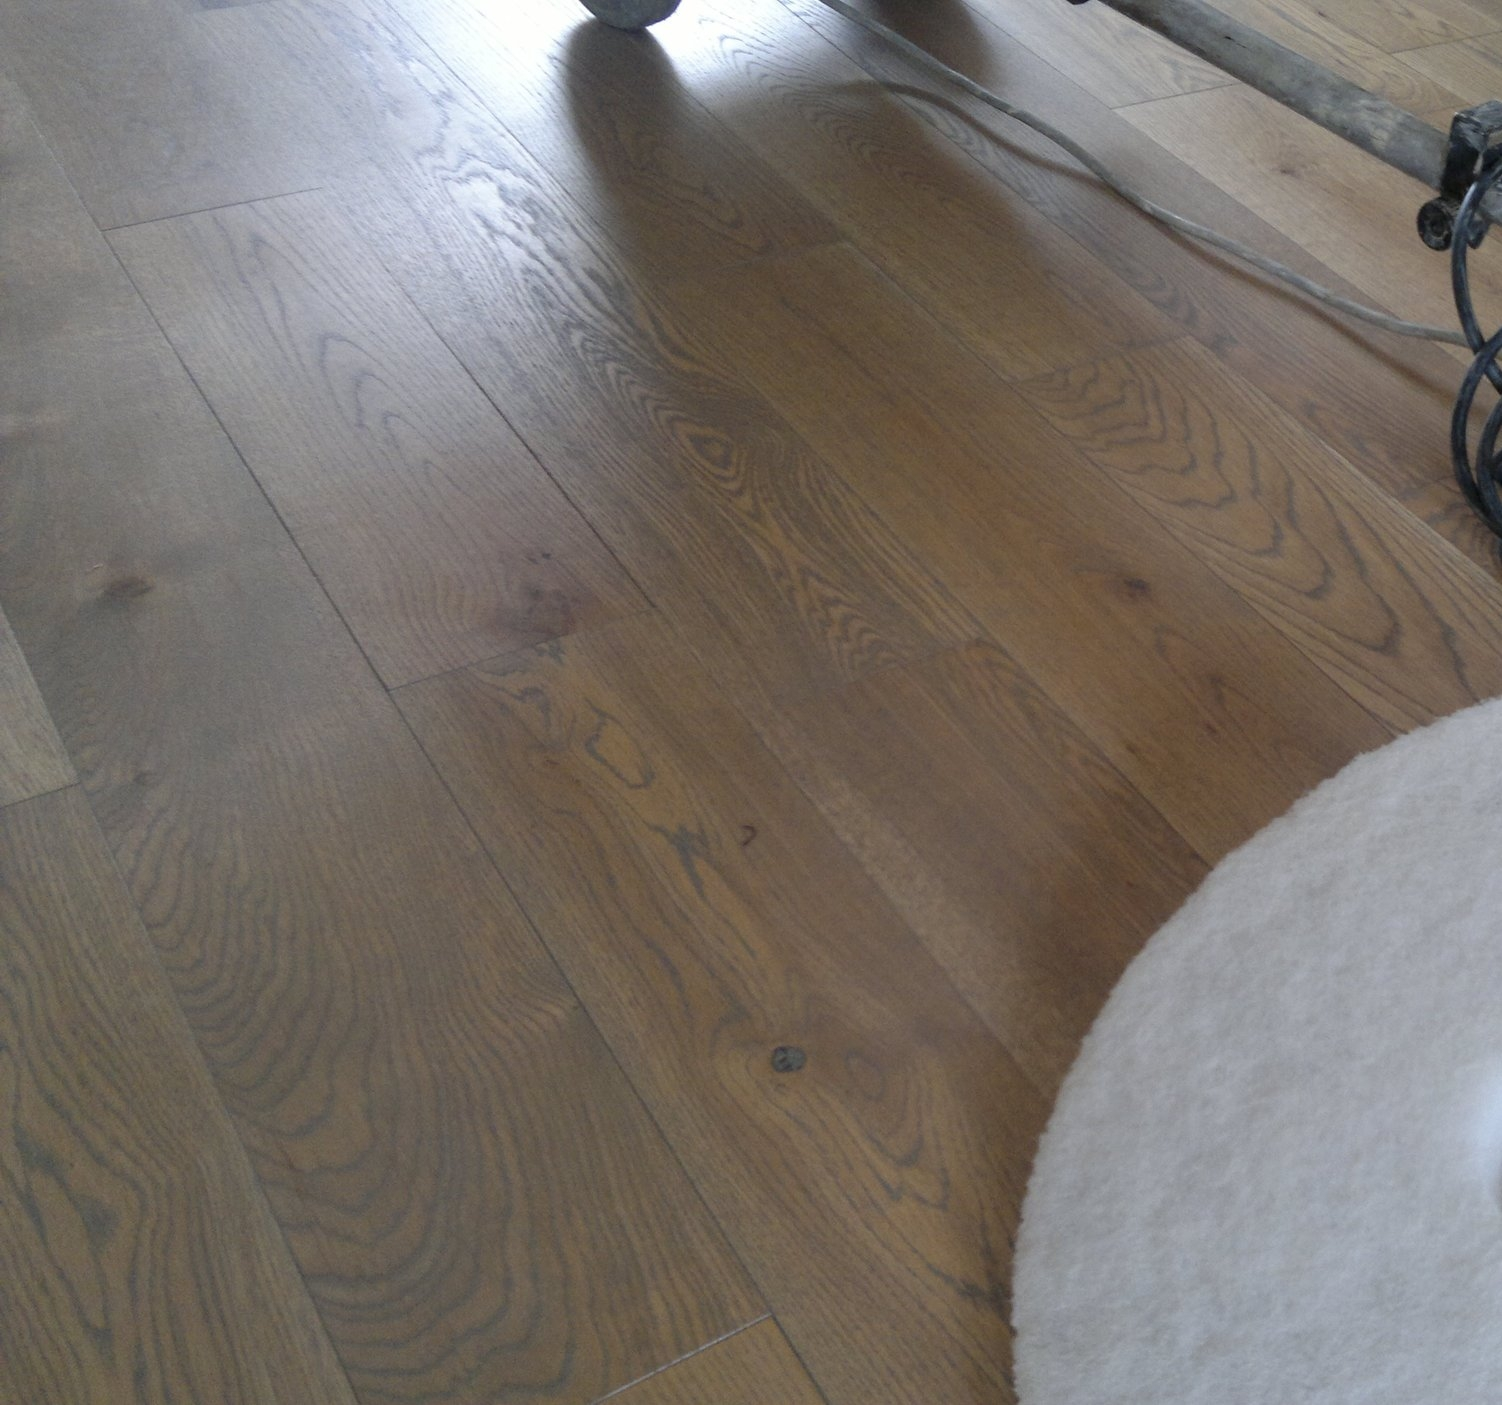 oak floor treated with tinted hardwax oil